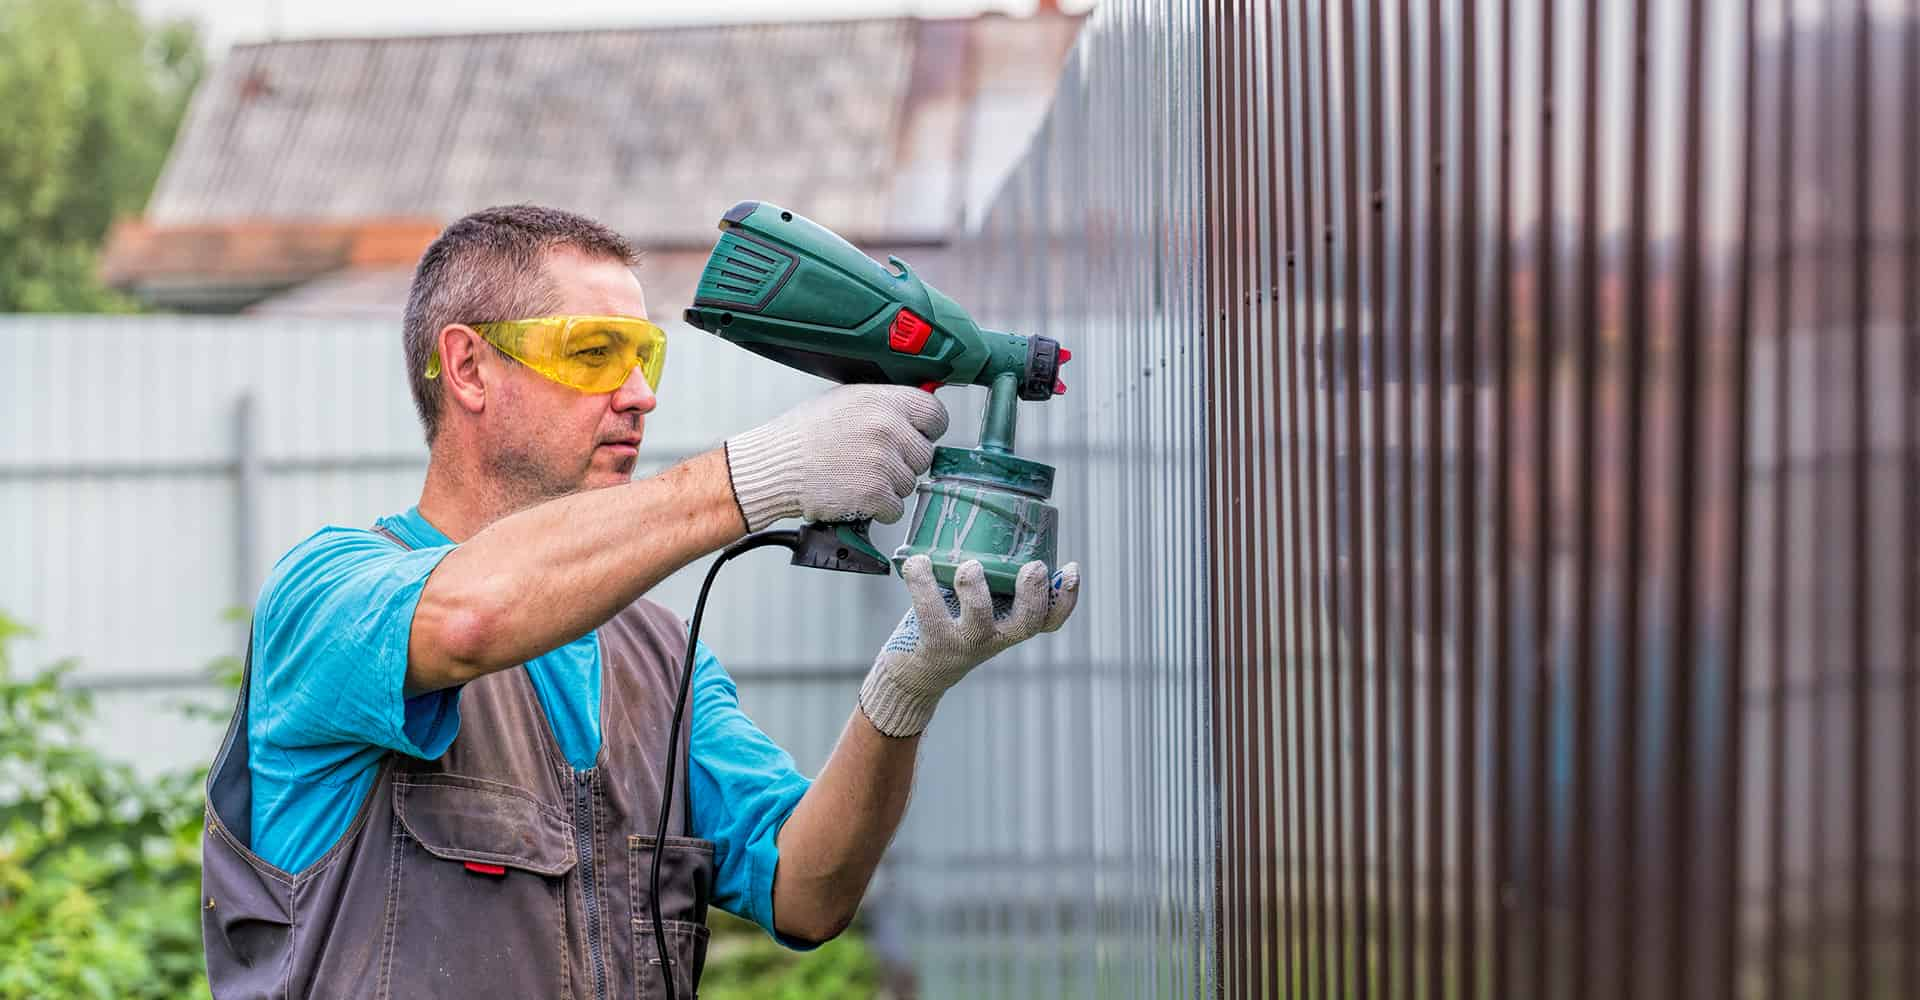 fence-sprayer